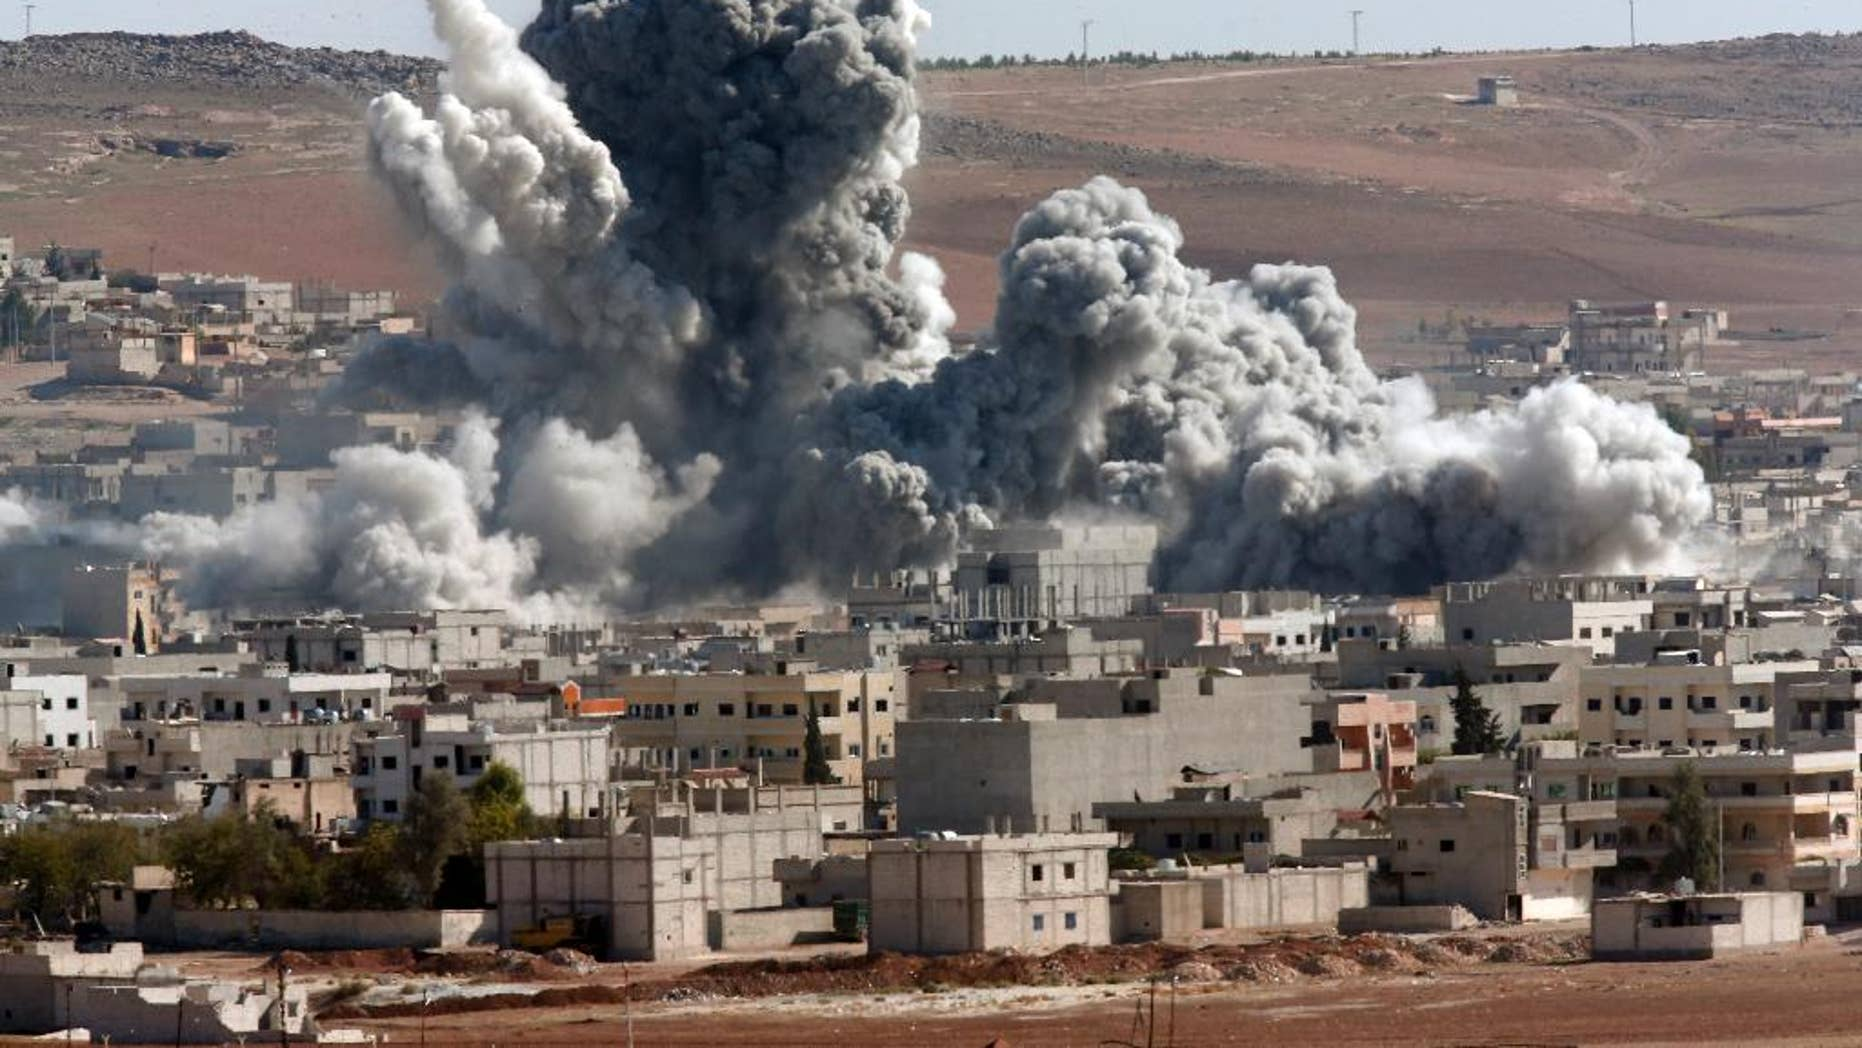 Oct. 22, 2014: Thick smoke from an airstrike by the US-led coalition rises in Kobani, Syria, as seen from a hilltop on the outskirts of Suruc, at the Turkey-Syria border. Kobani, also known as Ayn Arab, and its surrounding areas, has been under assault by extremists of the Islamic State group since mid-September and is being defended by Kurdish fighters.